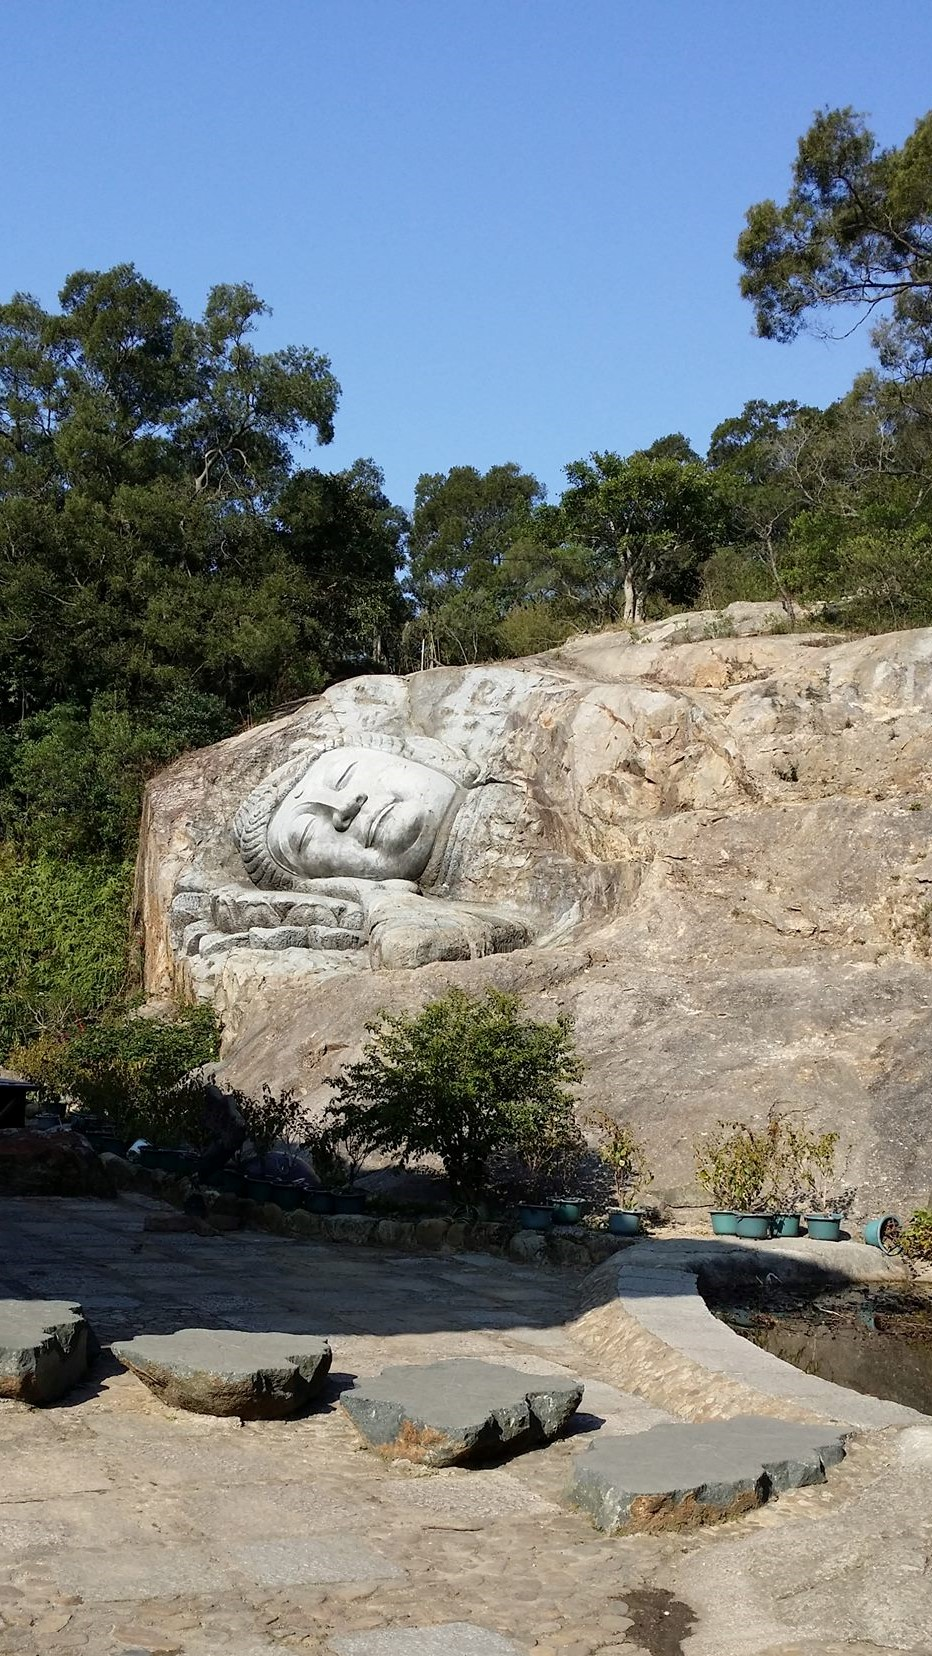 Sleeping Buddha, China